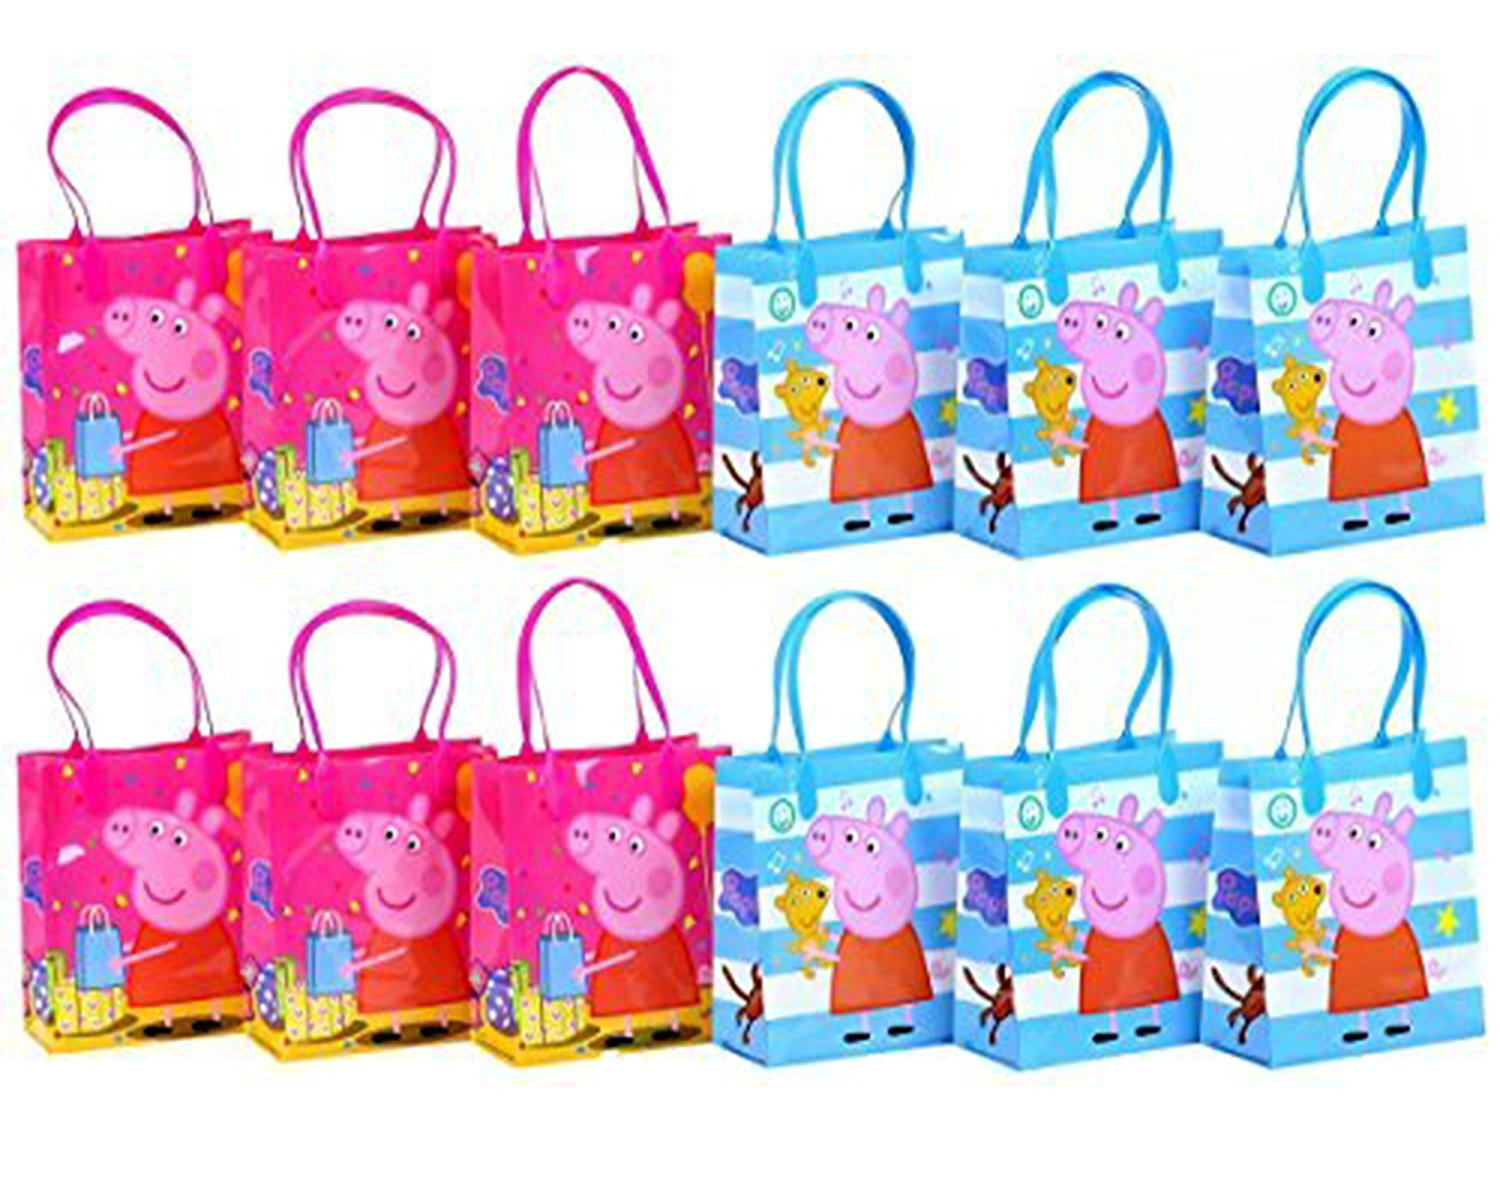 peppa shop kids blower blowers of pig pack decorations party supplies blowouts decor